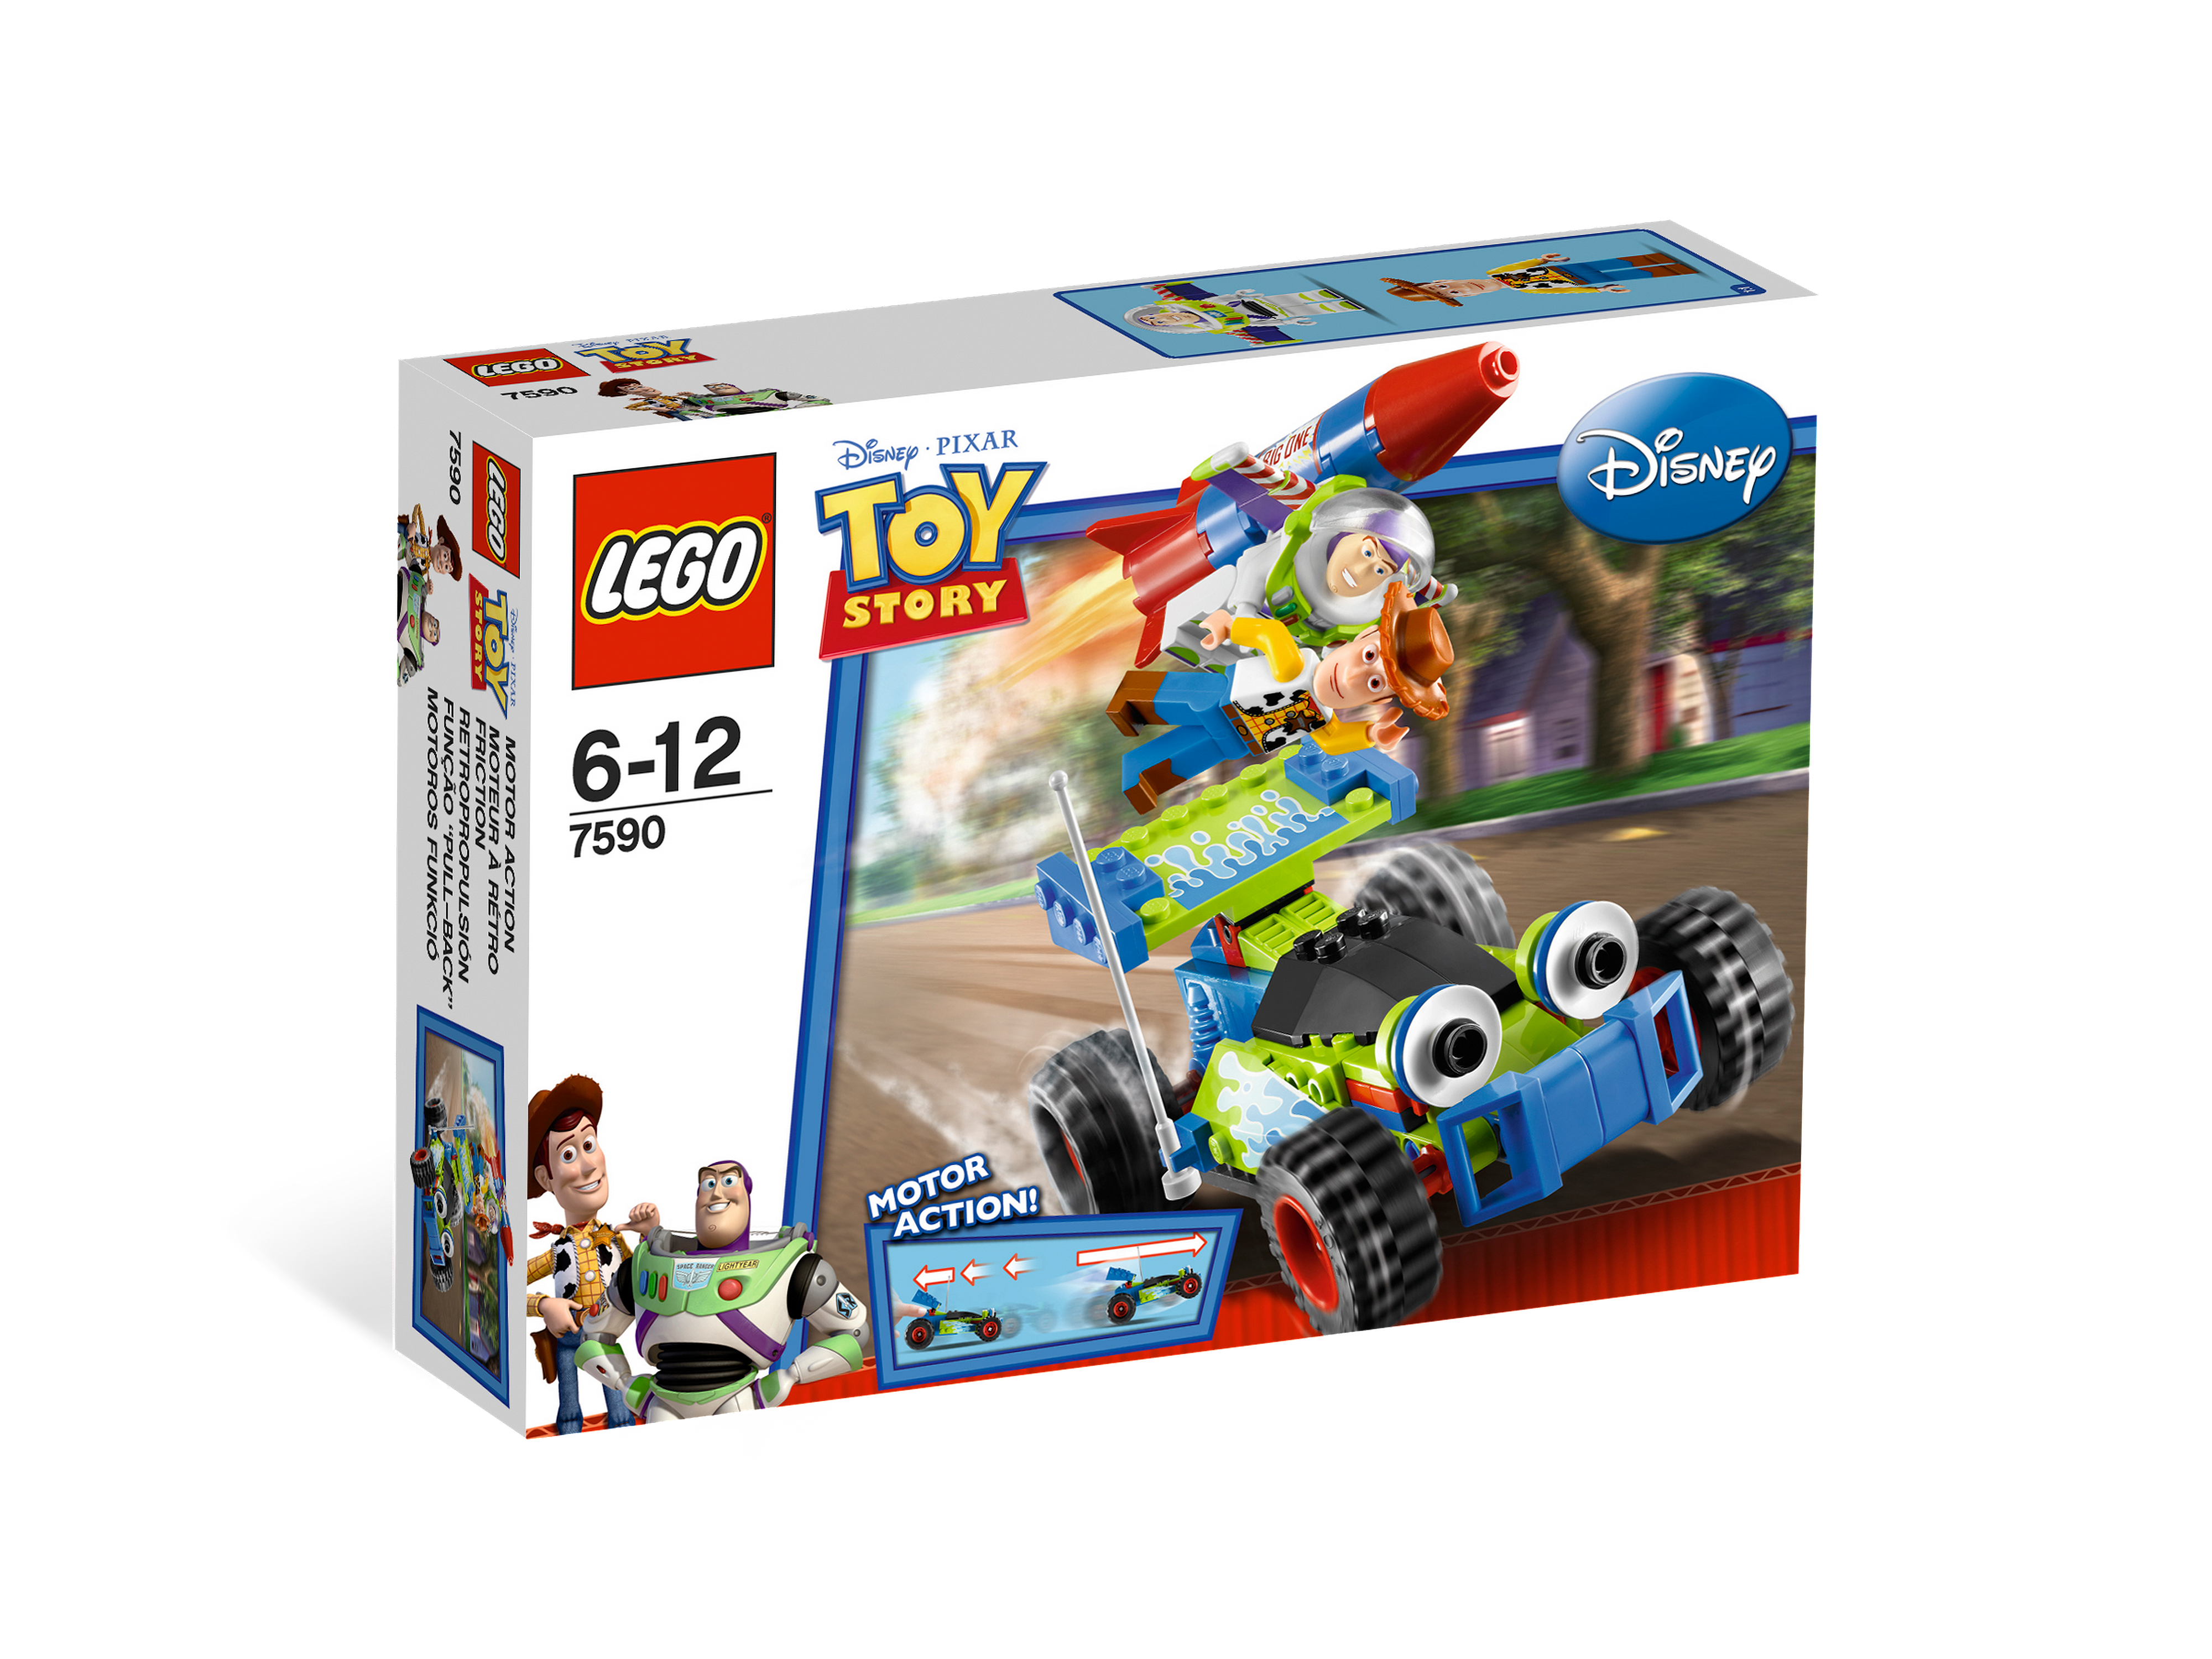 Toy Story Games Woody To The Rescue : Woody and buzz to the rescue brickipedia lego wiki